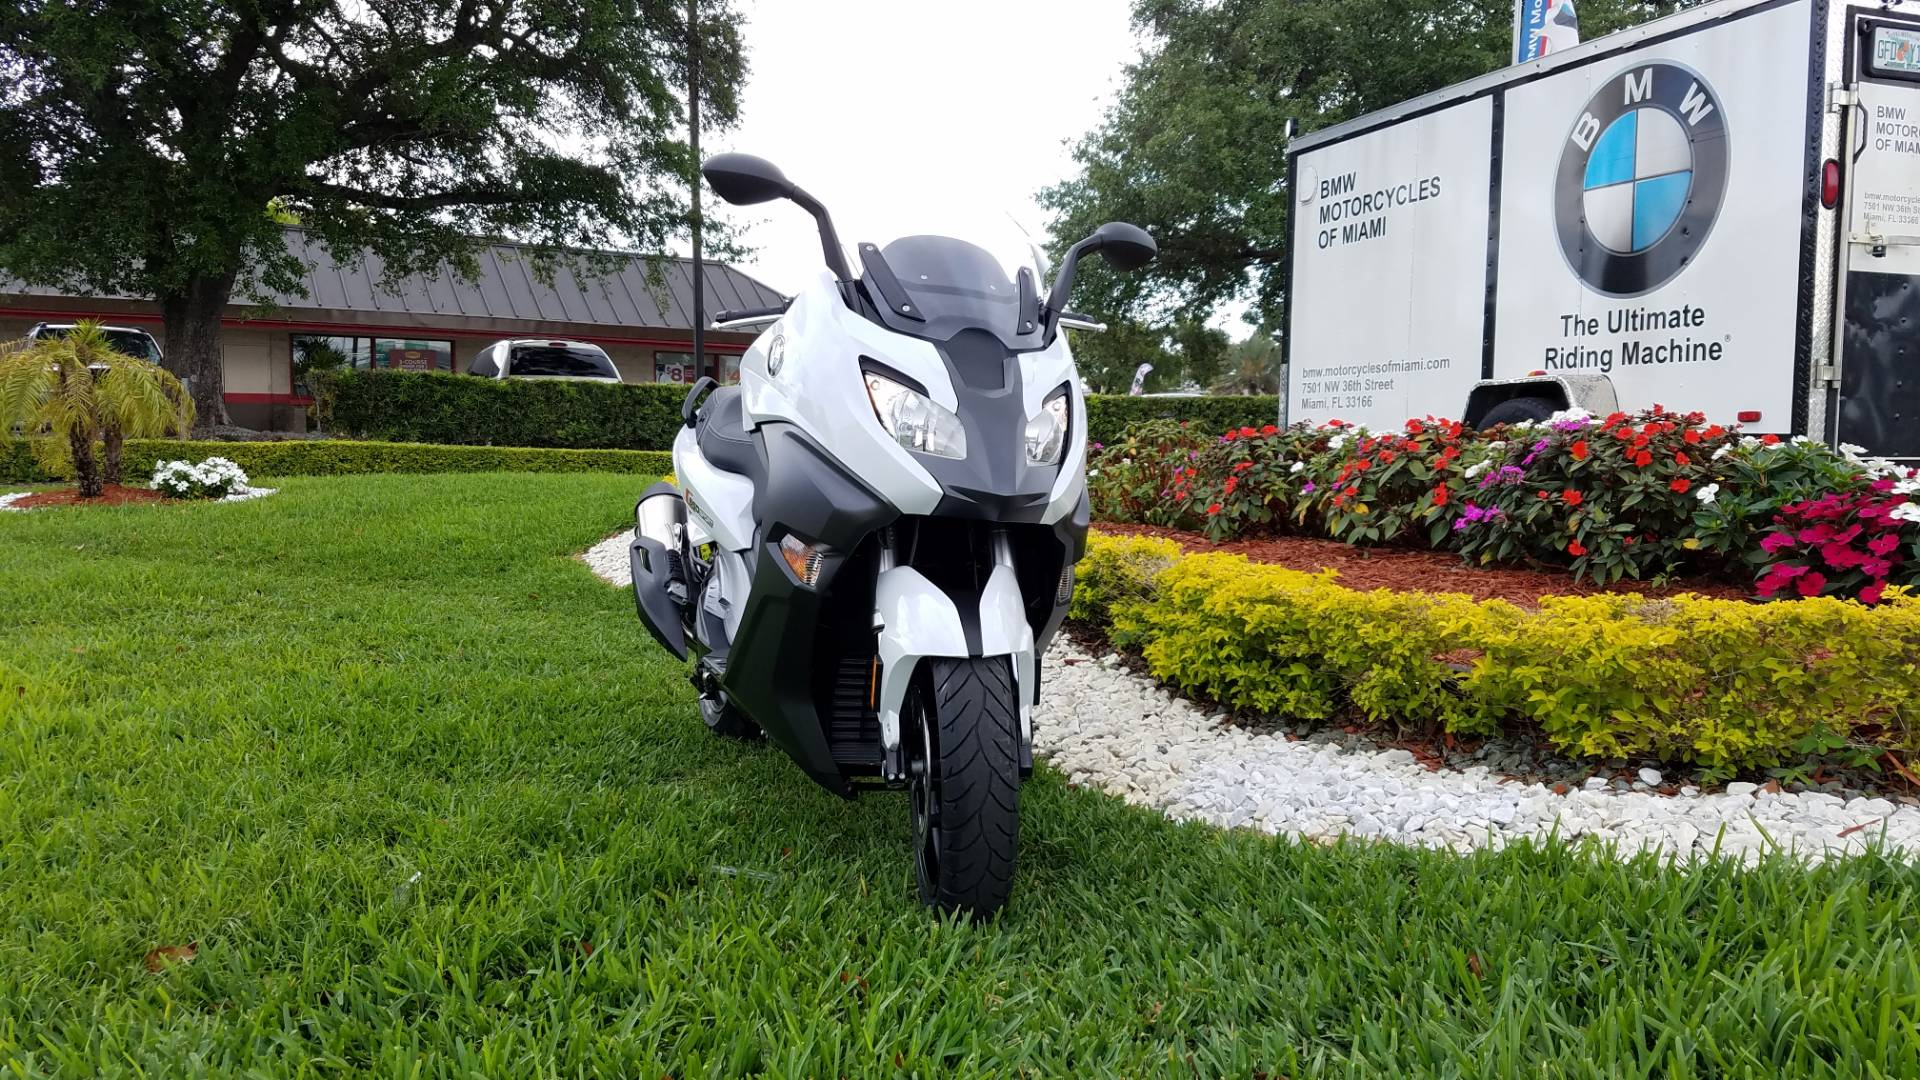 New 2017 BMW C 650 S For Sale, BMW C 650 SPORT For Sale, BMW Motorcycle SCOOTER, new BMW SCOOTER 650